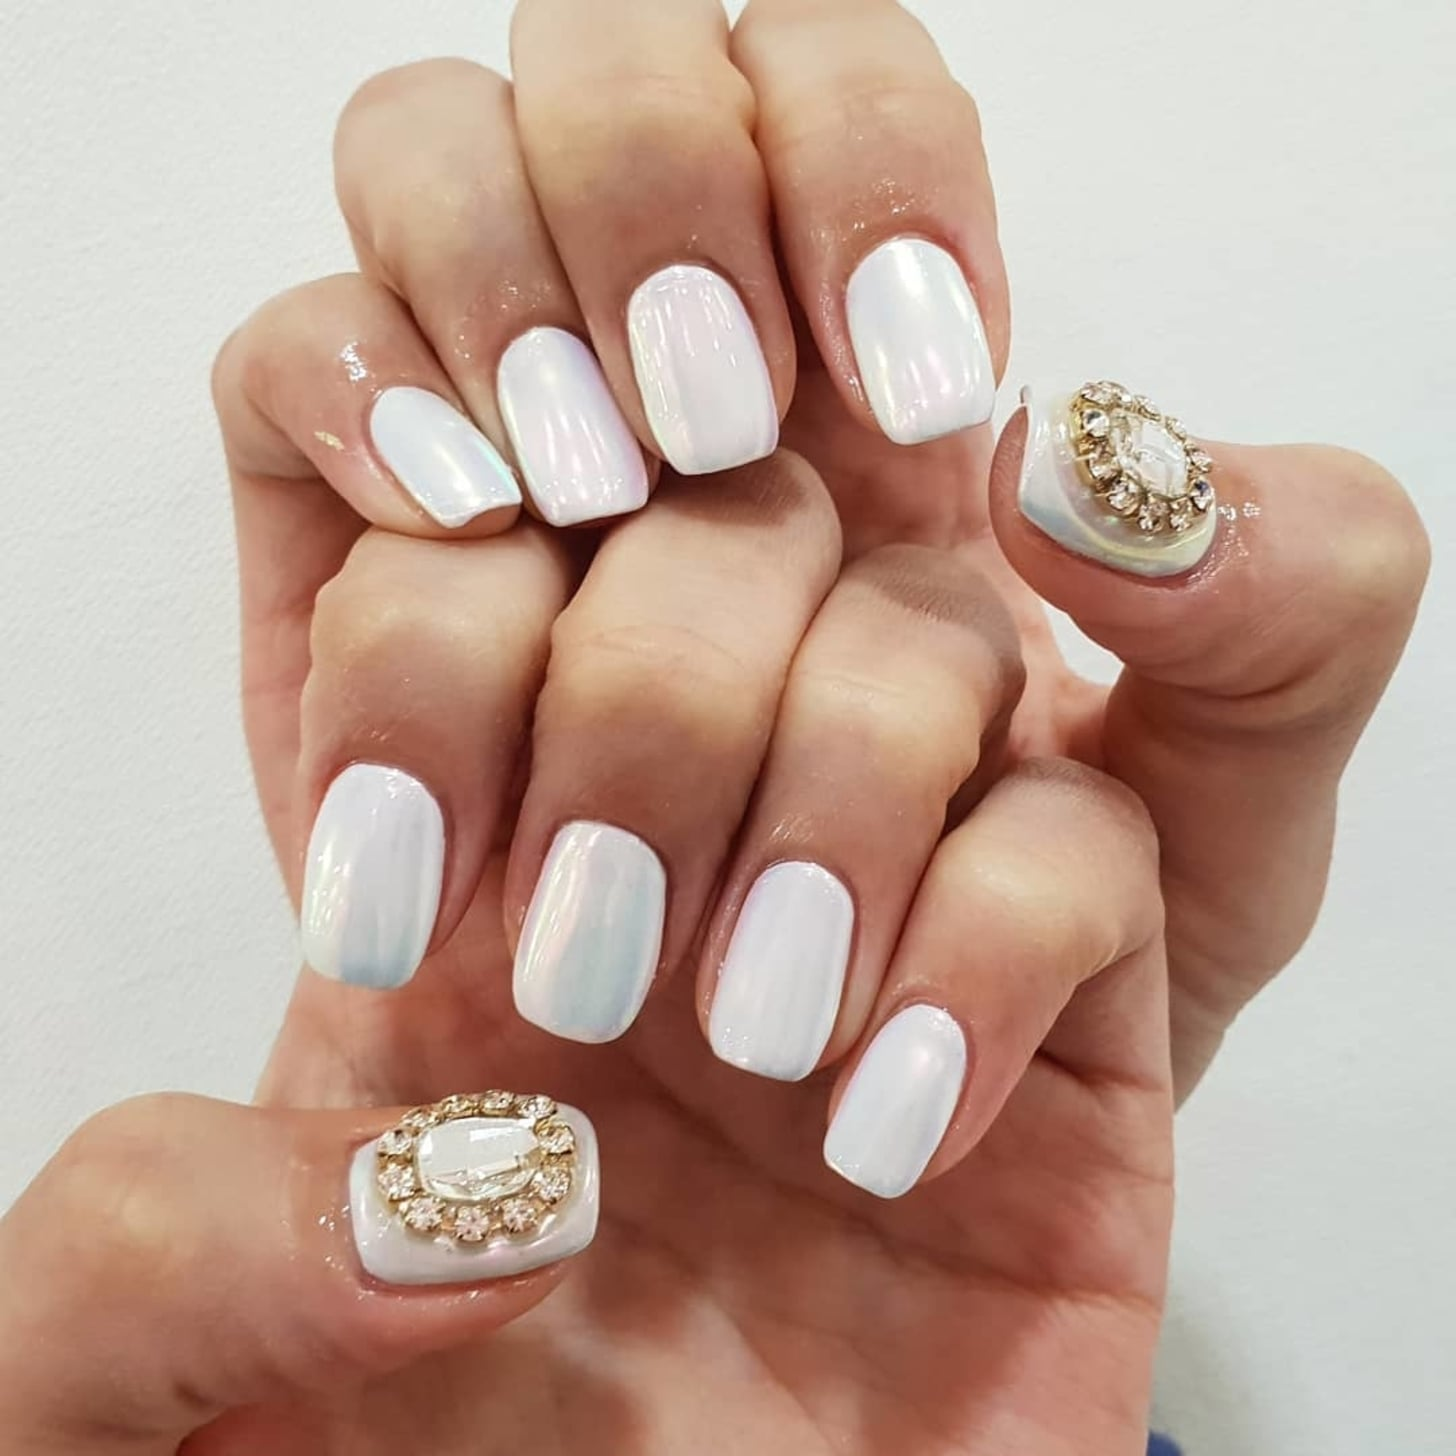 K Beauty Nail Art Trend | Iridescent Nails | POPSUGAR Beauty UK